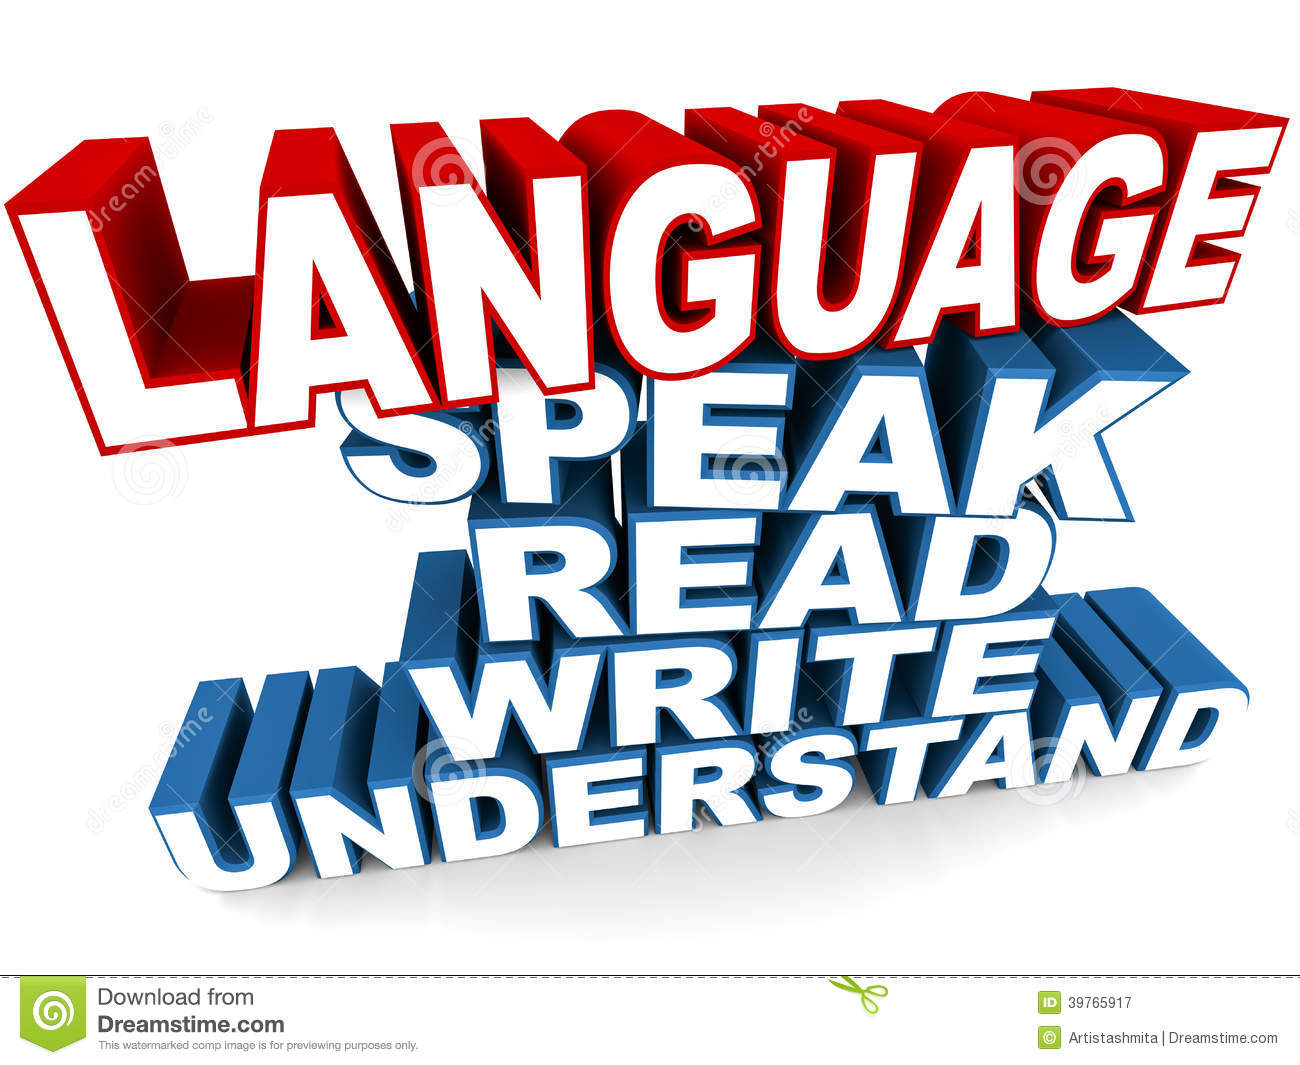 the wire spoken language plan essay Transcript of spoken language essay plan explore different social attitudes to the ways digital communications are affecting language outline the focus of your investigation:.